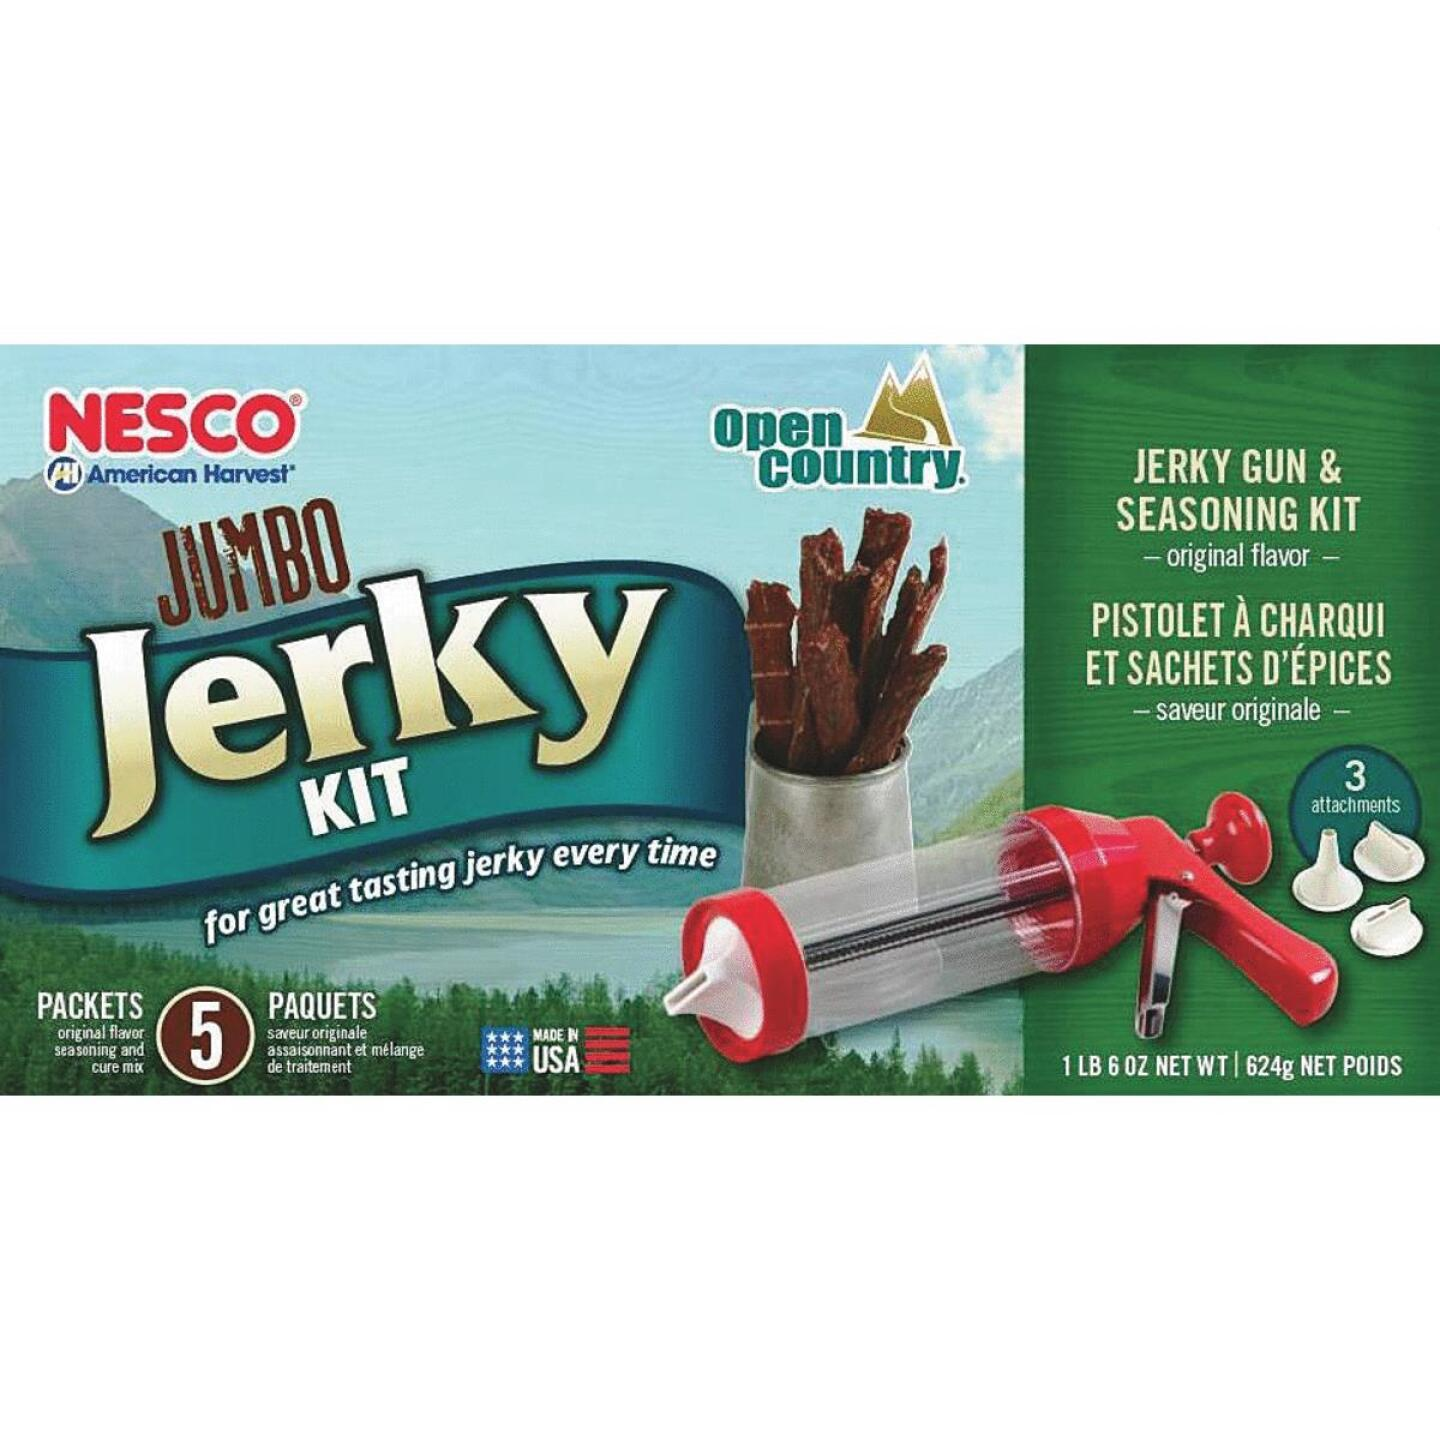 Nesco American Harvest Jumbo Jerky Works Kit Image 1